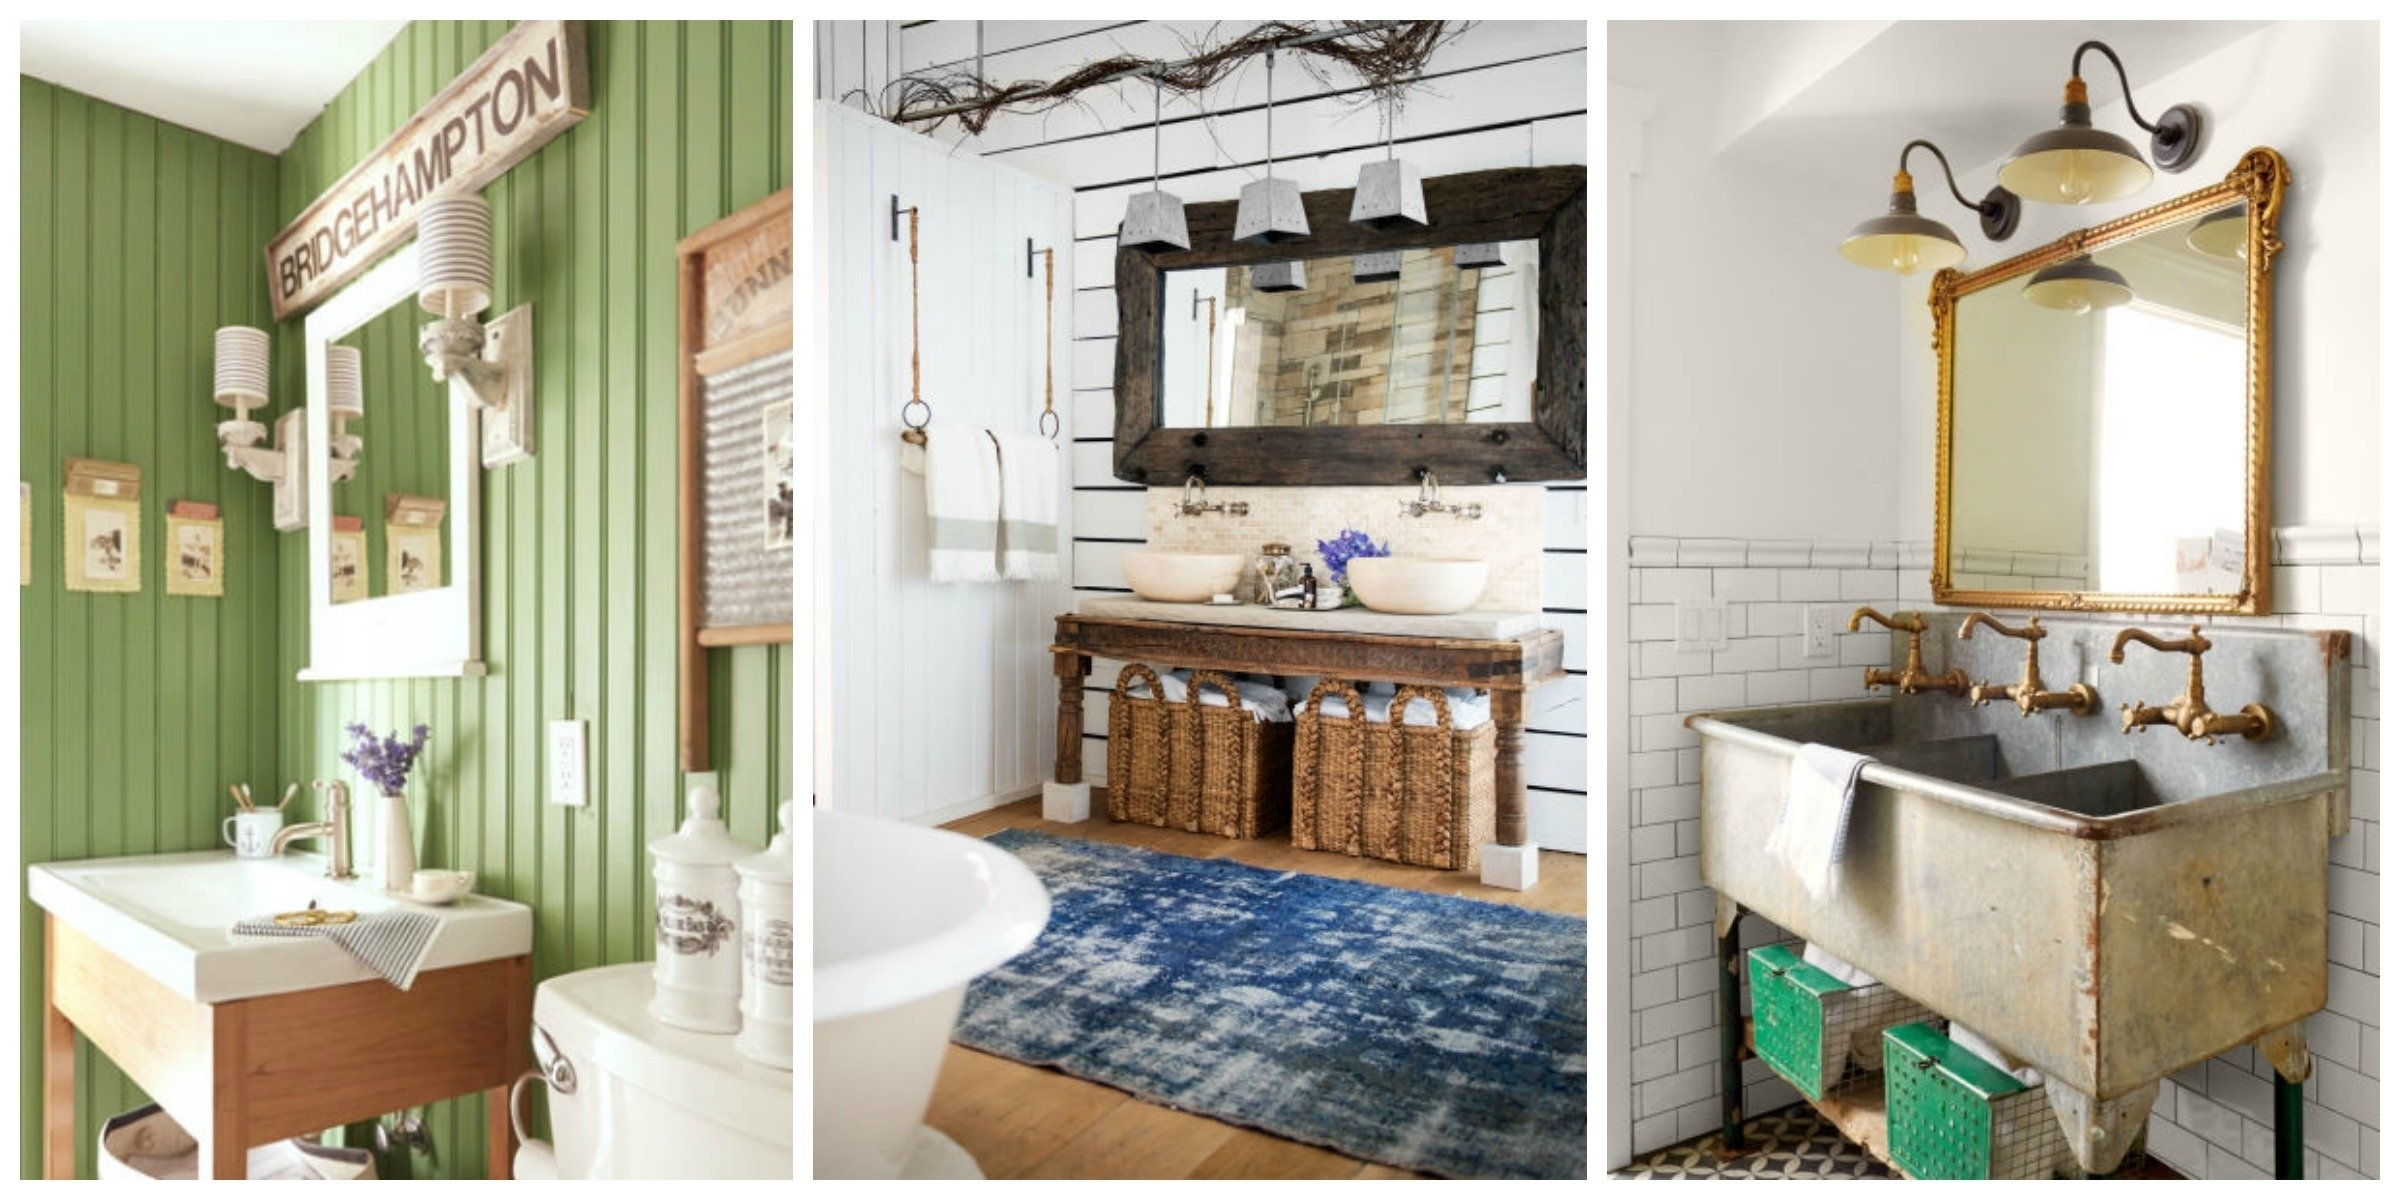 10 Stylish Ideas For Decorating A Bathroom amazing of simple picmonkey collage from bathroom decor 2386 2020